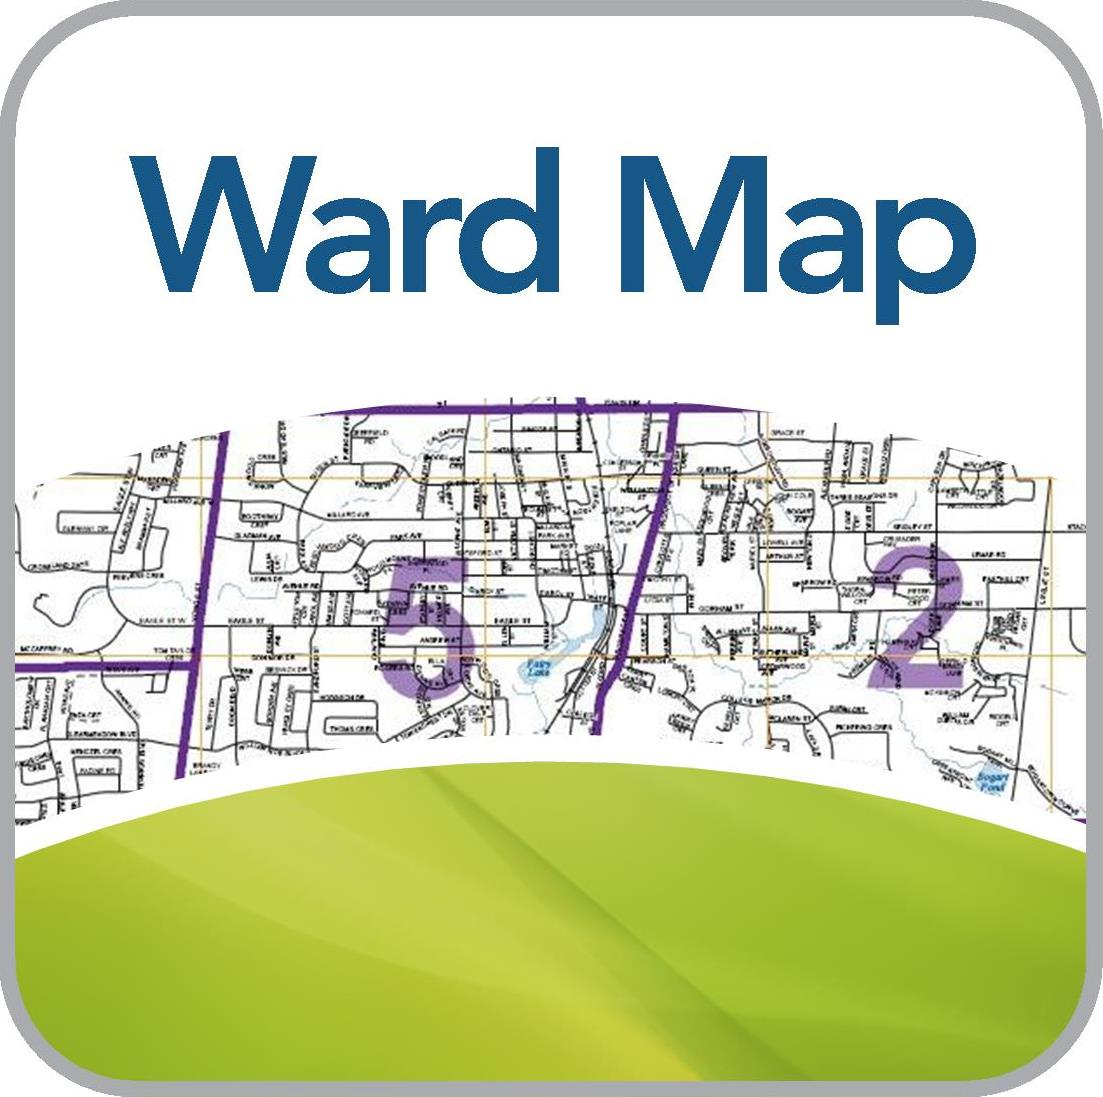 Map of Wards